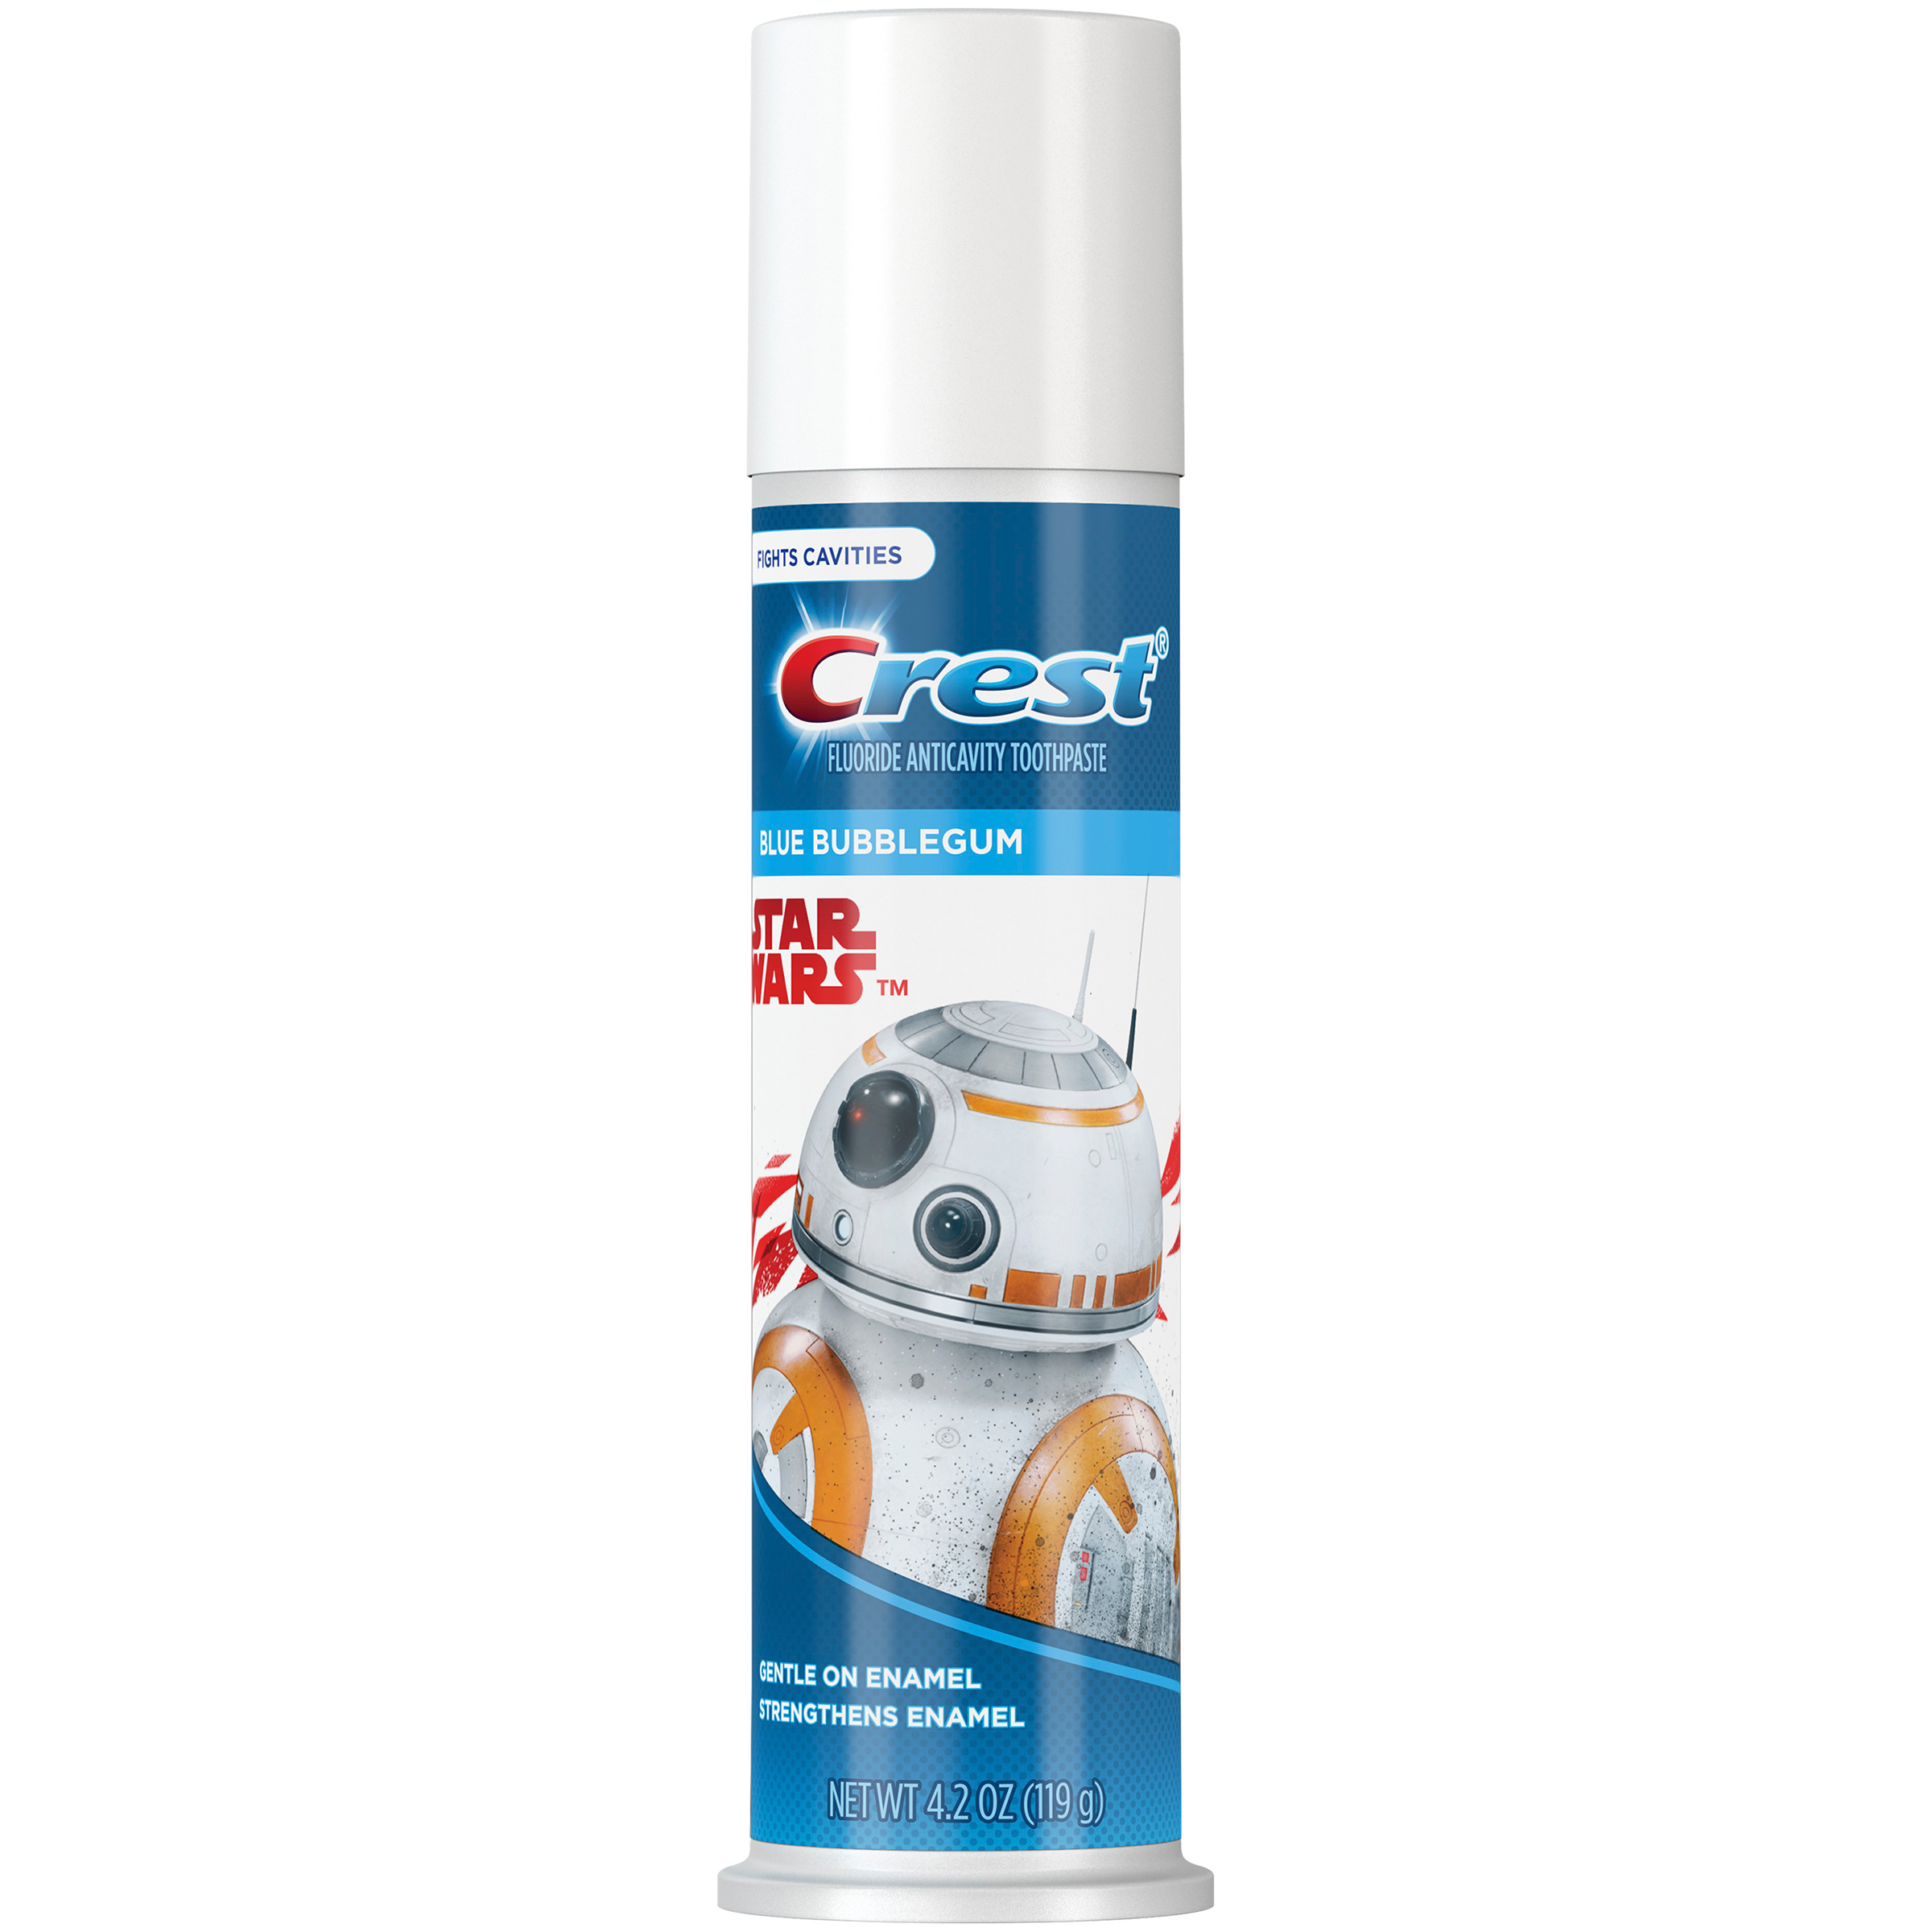 Crest Kid's Toothpaste Featuring Disney's STAR WARS (children and toddlers 2+), Bubblegum, 4.2 ounces